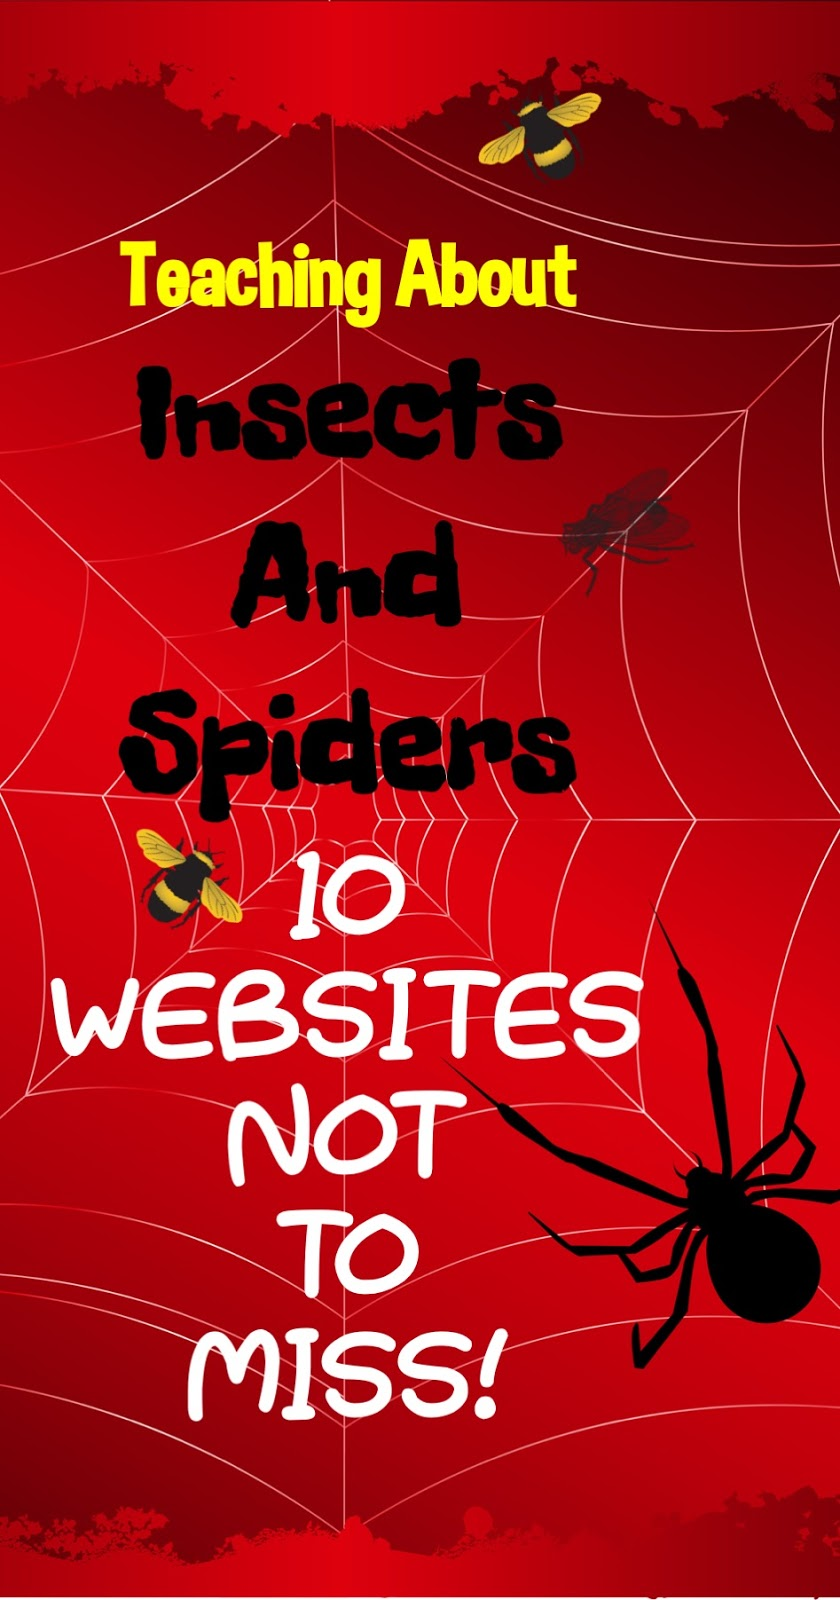 dragon s den curriculum teaching about insects and spiders 10